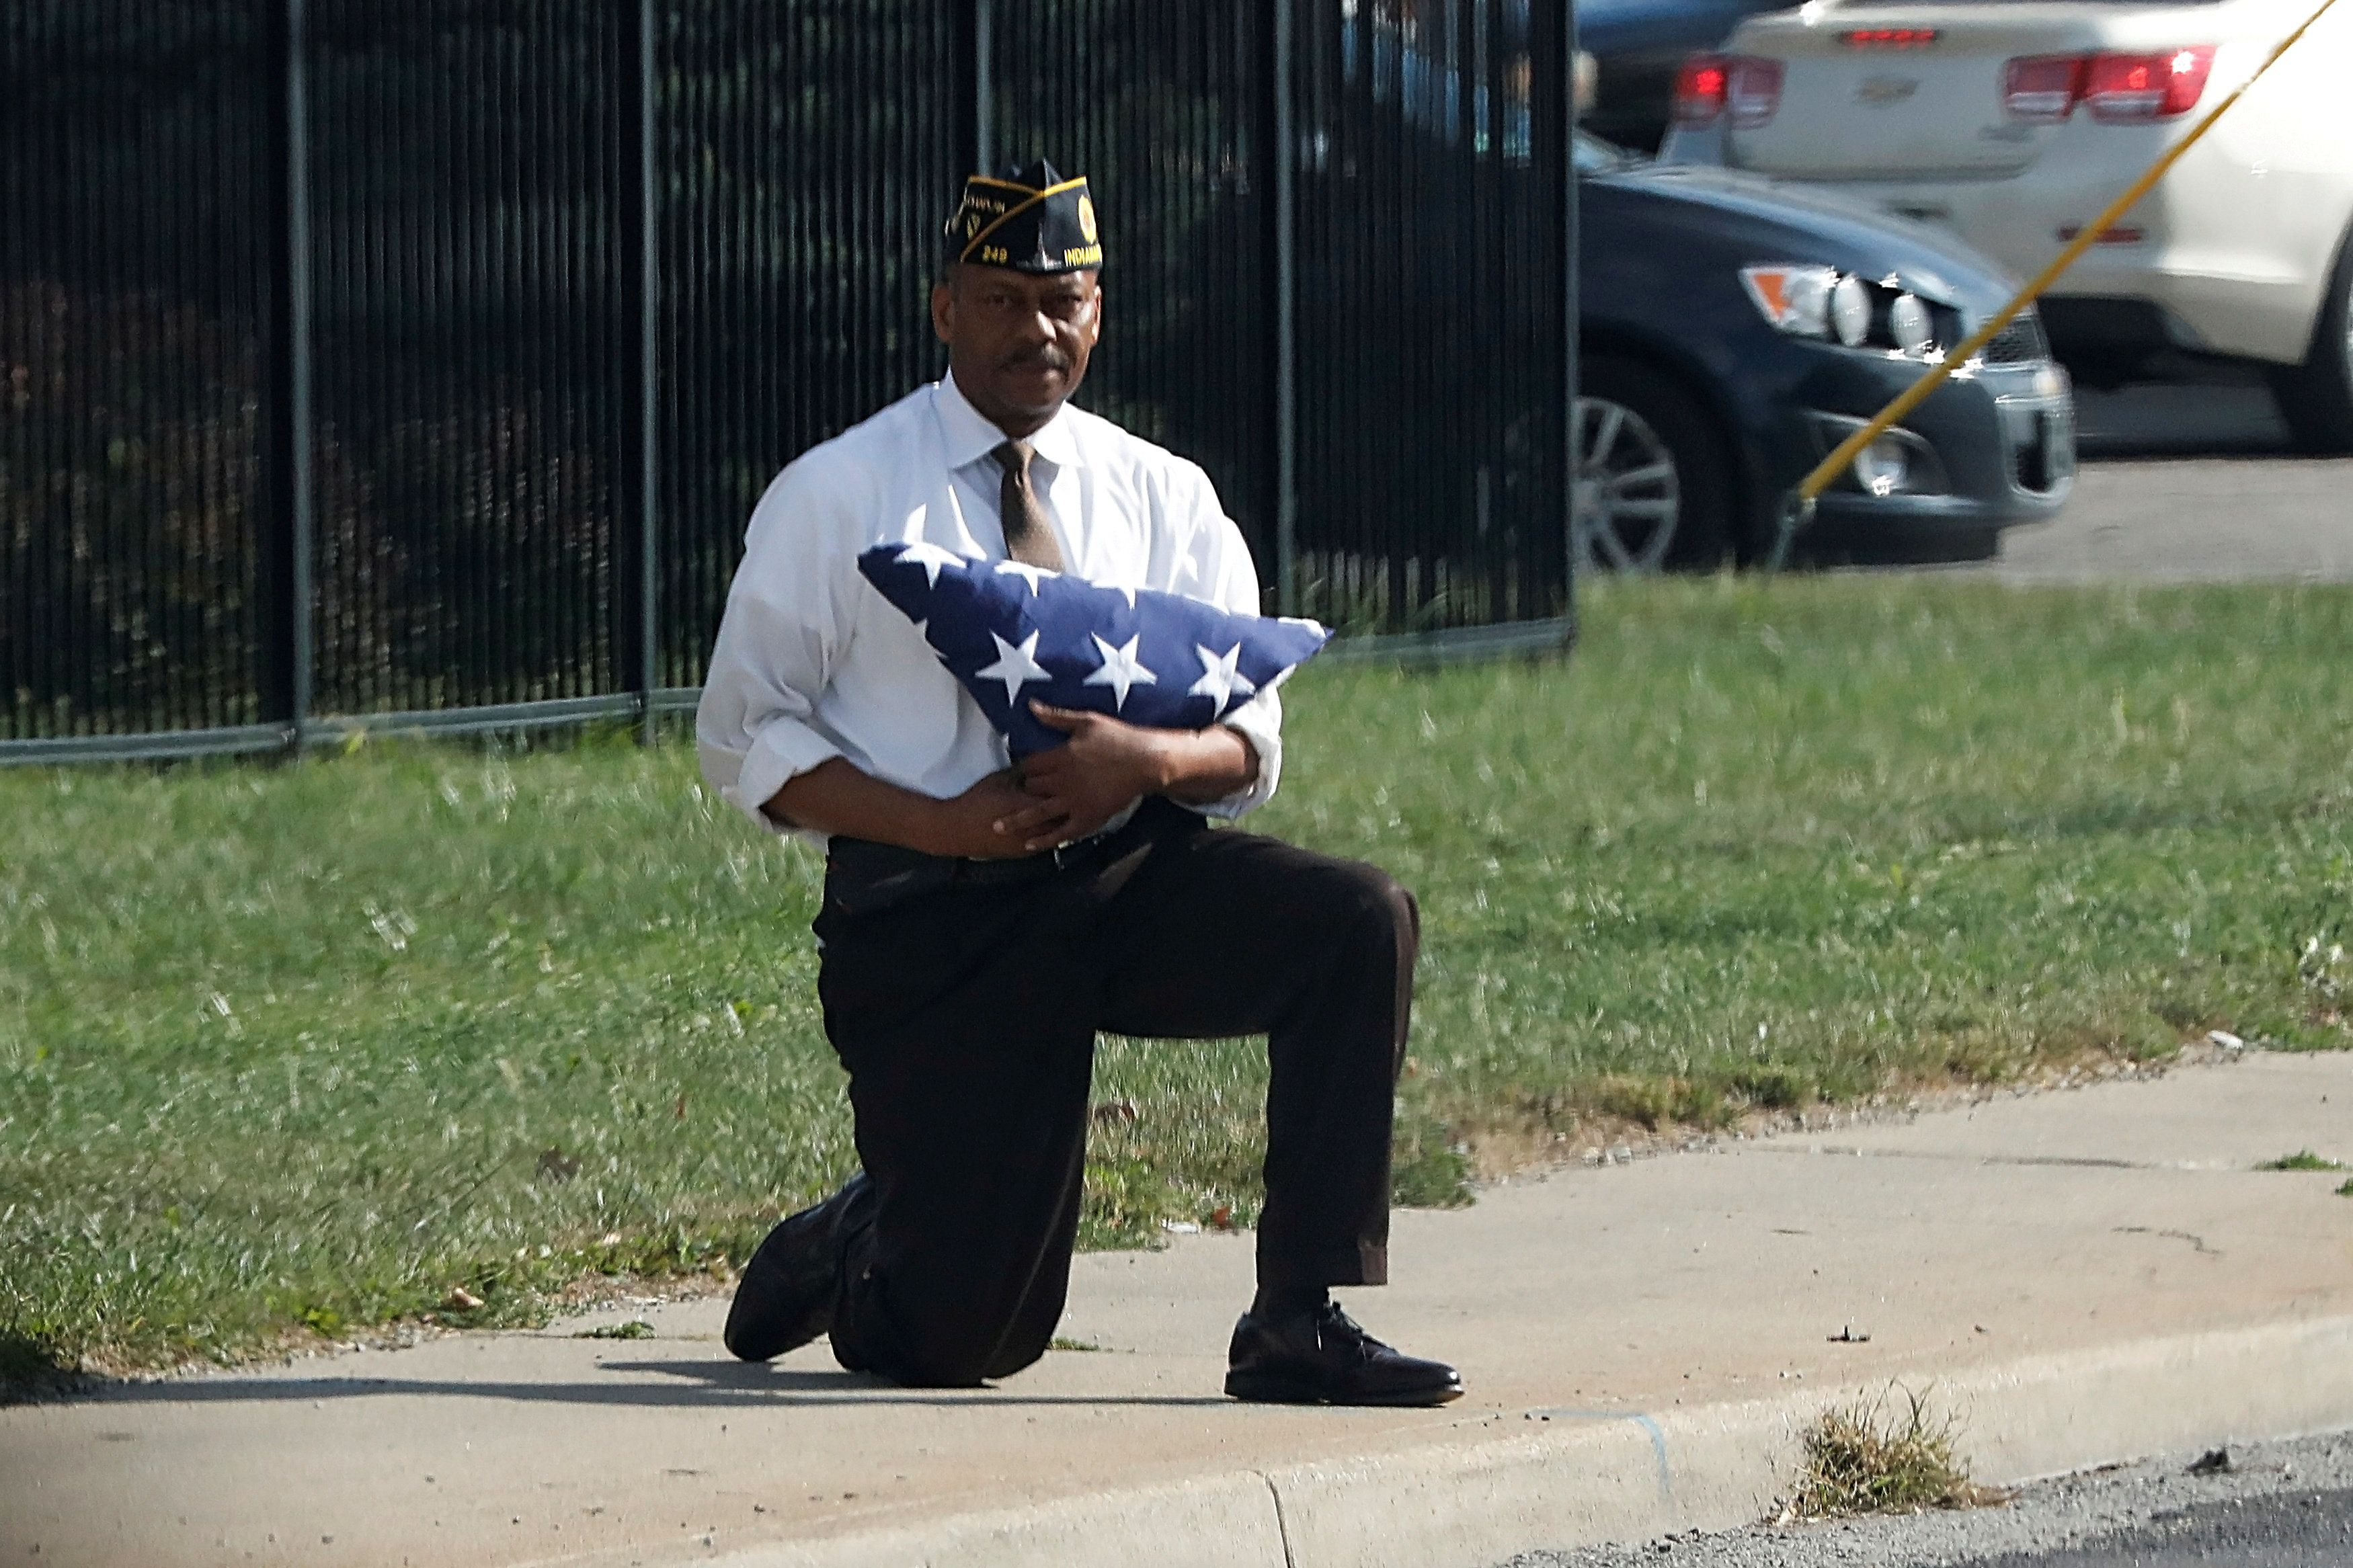 Veteran Who Kneeled By Trump's Motorcade Explains Why Protests, Patriotism Go Hand In